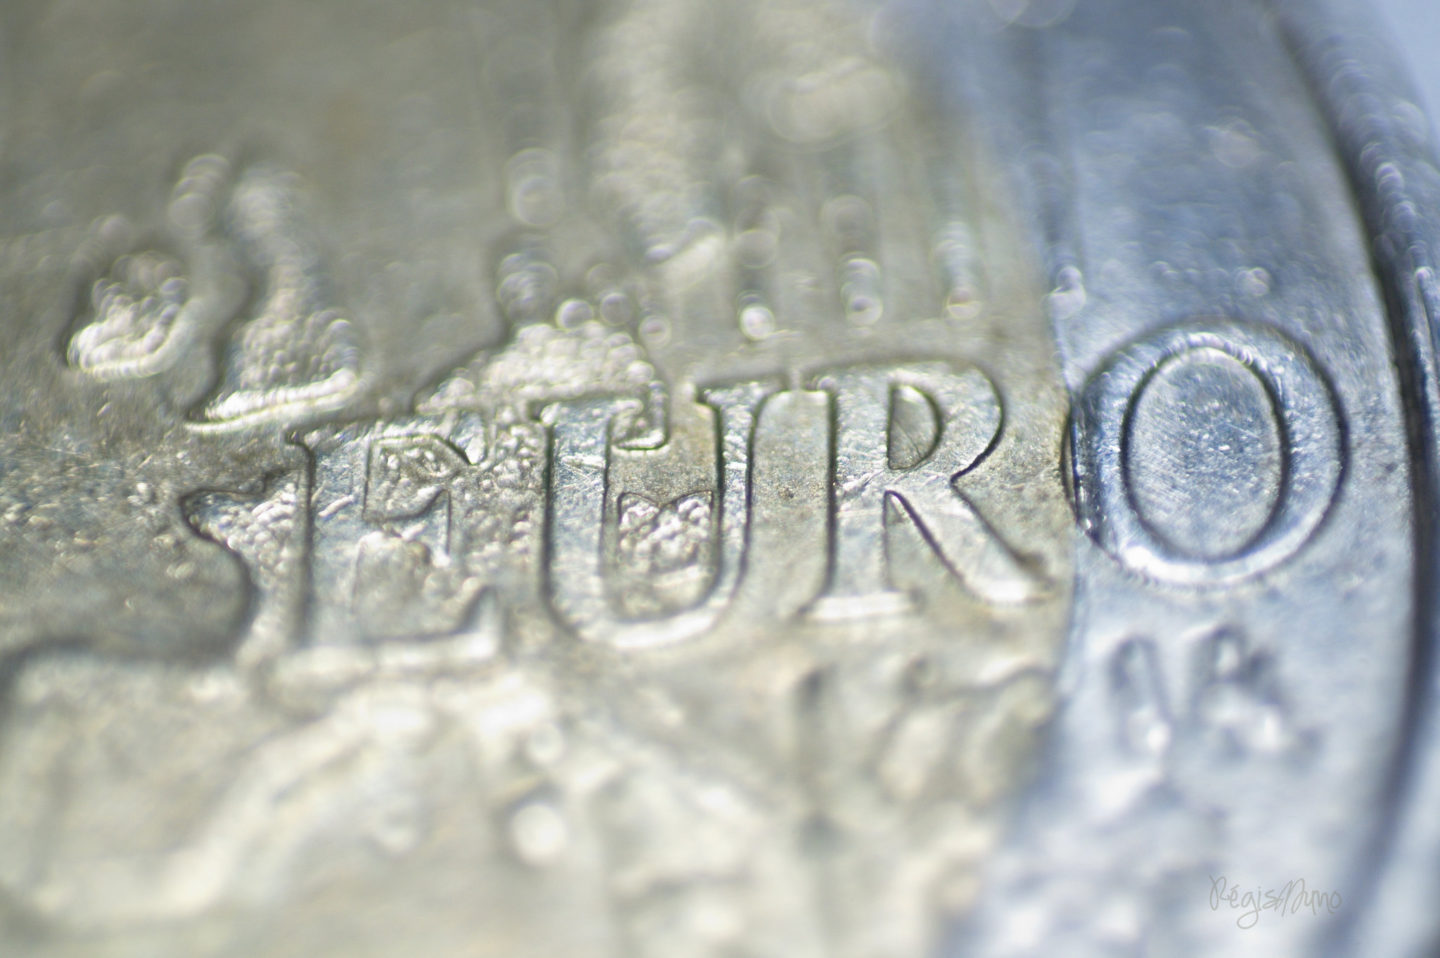 The European Monetary Union and V4 – in danger of being marginalised?